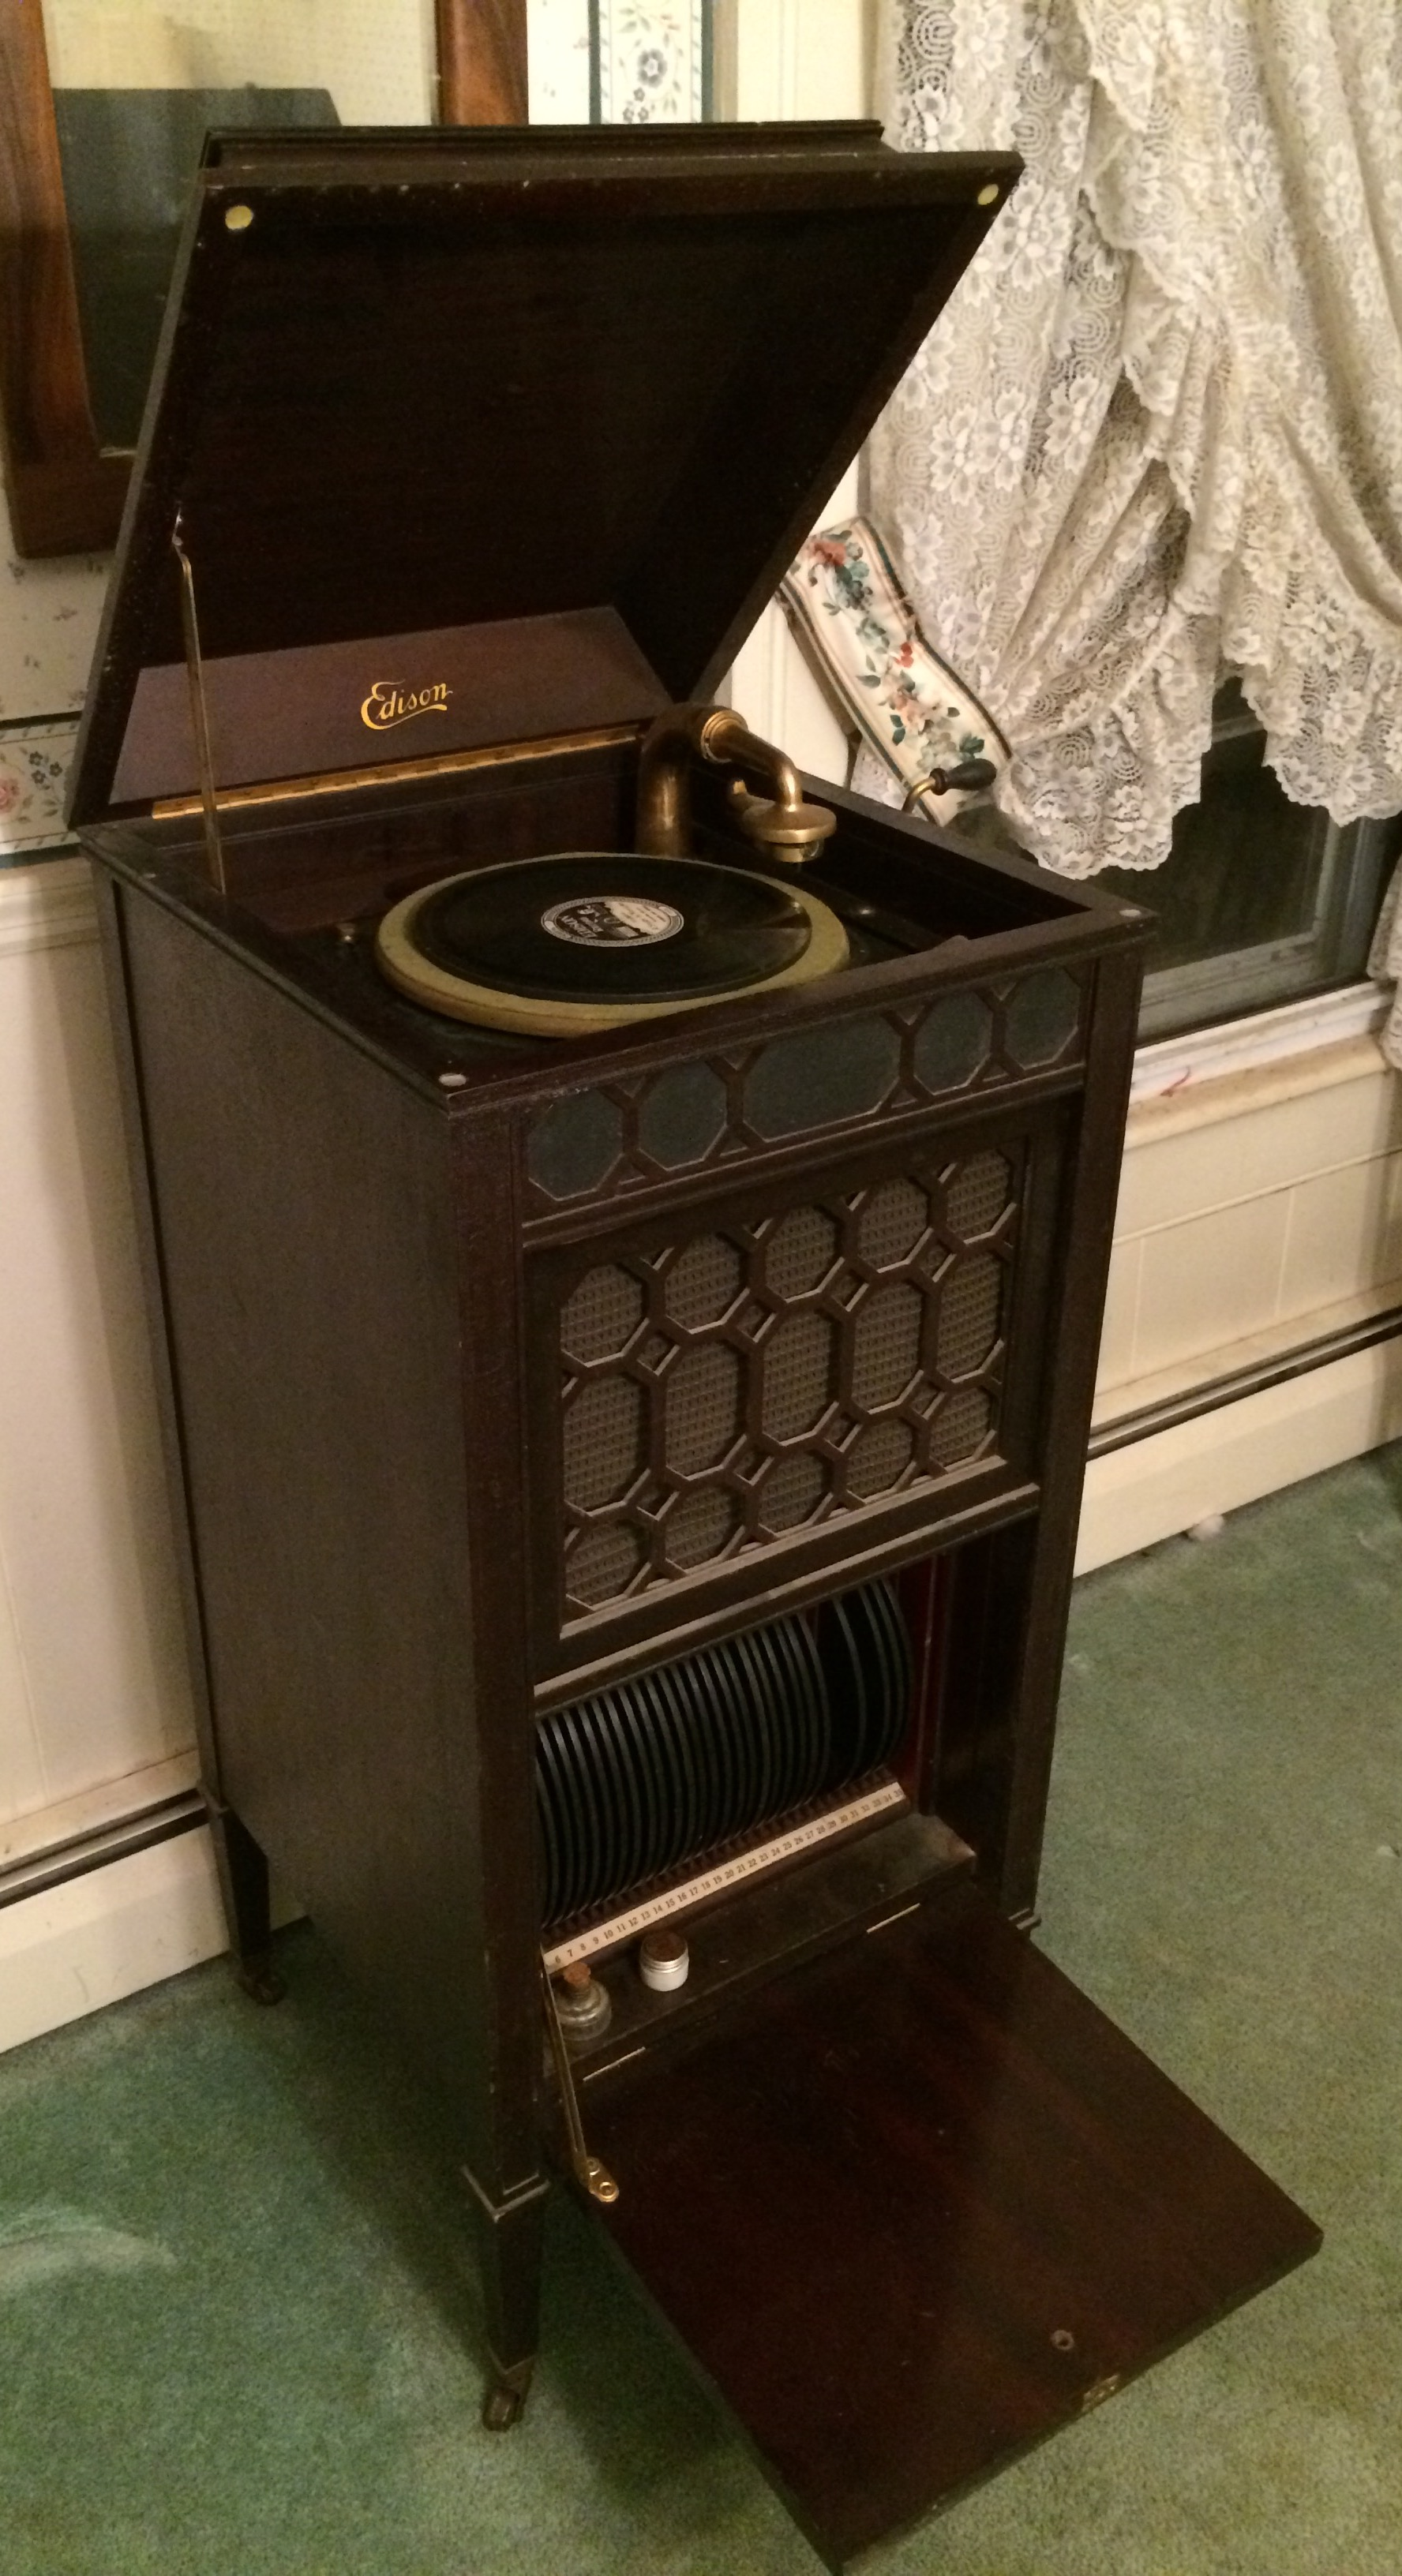 "from Stephen: Edison Disc Phonograph, 1916. ""Great for when the electricity goes out. Light the oil lamps, candles and crank up the music."""